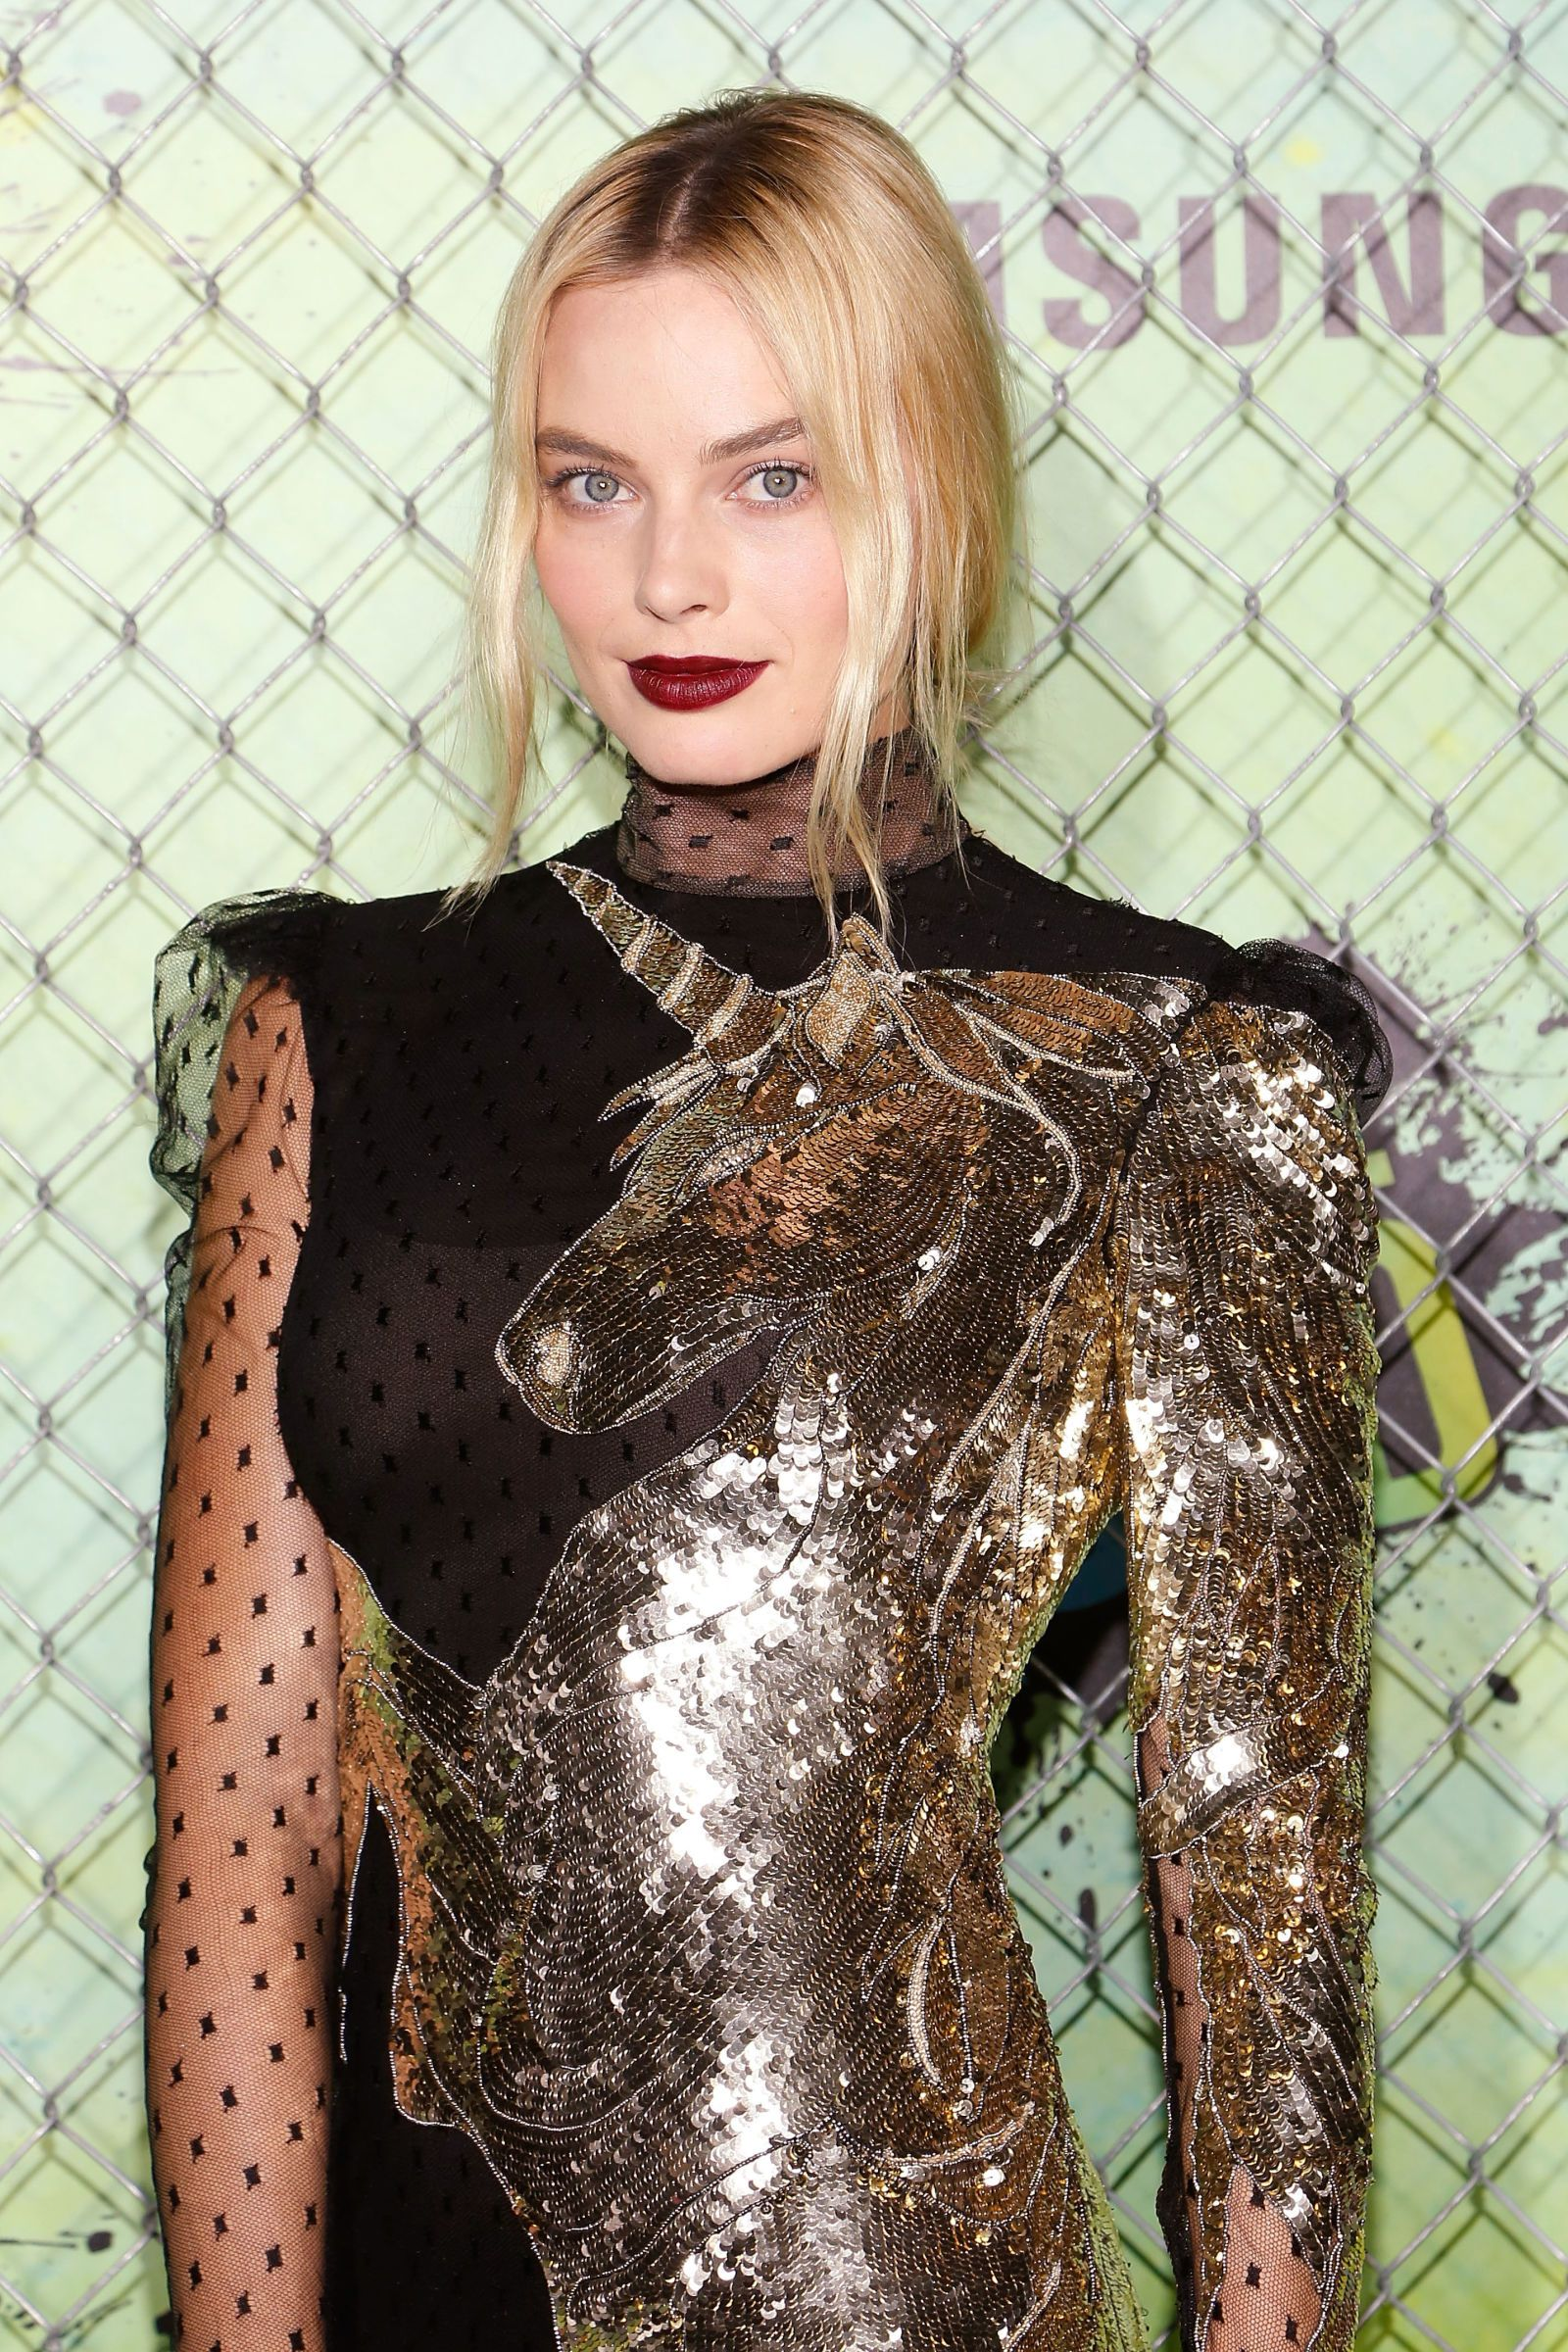 Margot Robbie Wears Majestic Unicorn Dress to 'Suicide Squad' Premiere